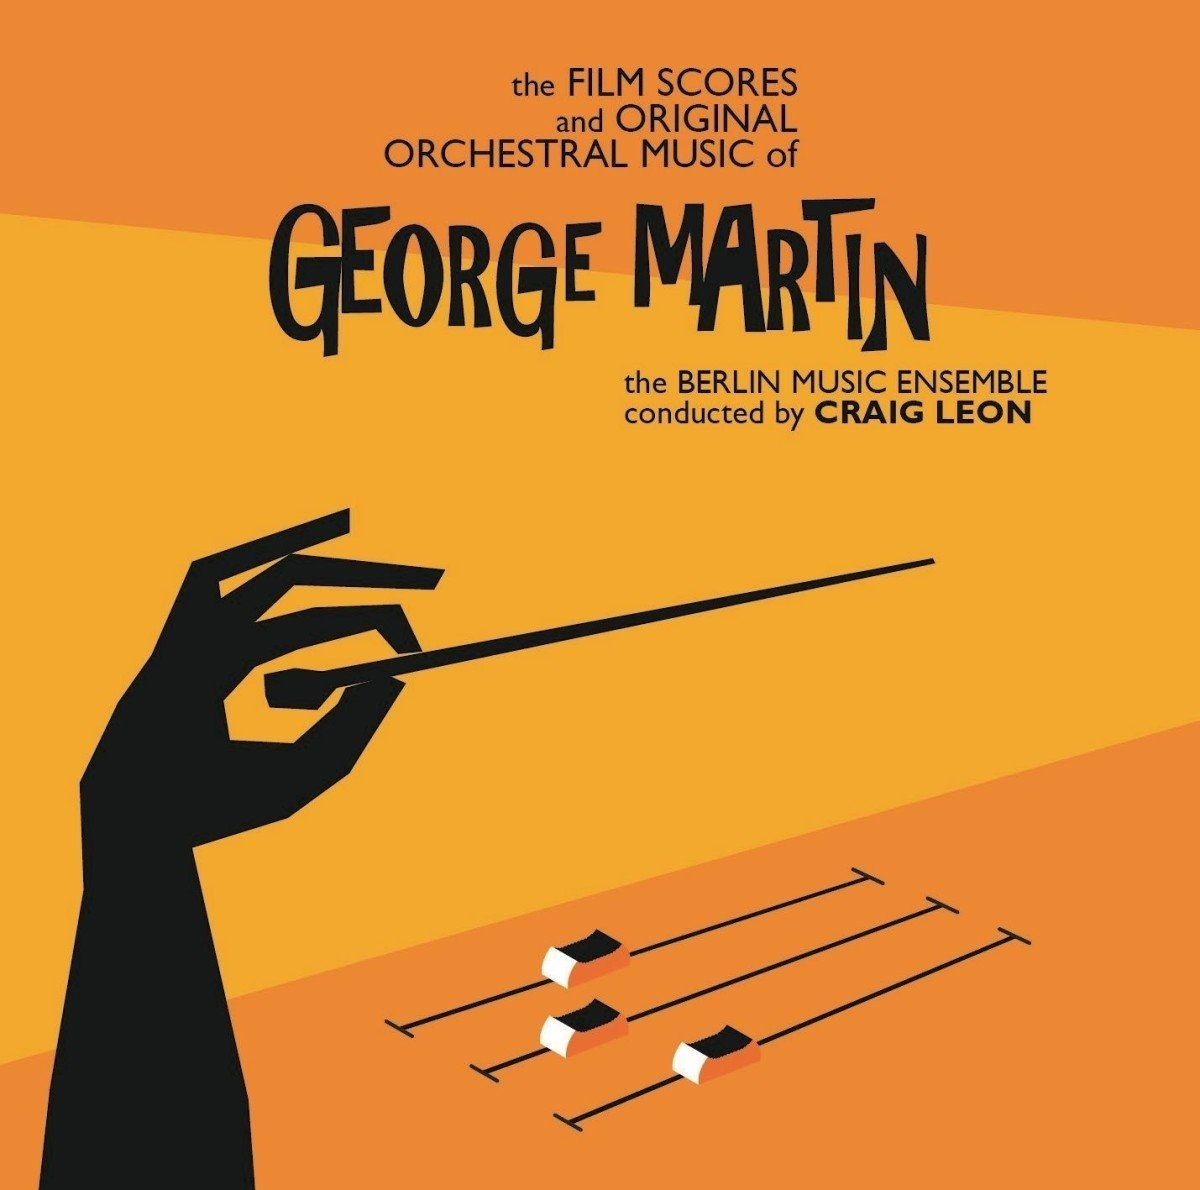 ost 12 17 George Martin The Film Scores and Original Orchestral Music Front Cover copy